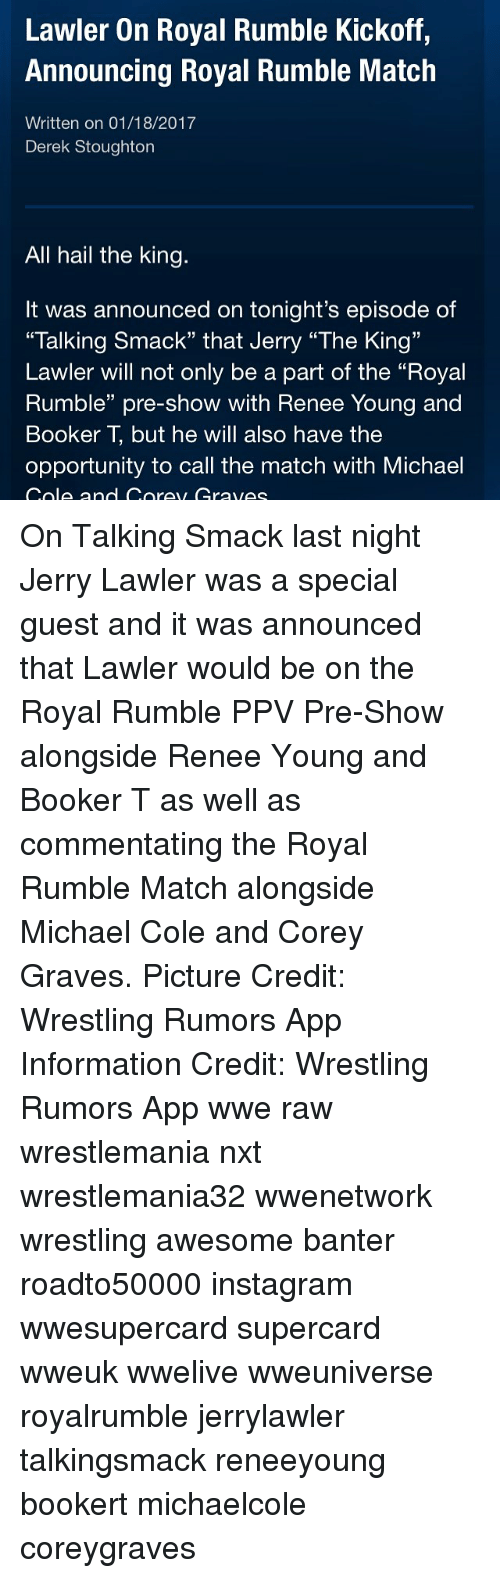 """michael cole: Lawler On Royal Rumble Kickoff,  Announcing Royal Rumble Match  Written on 01/18/2017  Derek Stoughton  All hail the king.  It was announced on tonight's episode of  """"Talking Smack"""" that Jerry """"The King""""  Lawler will not only be a part of the """"Royal  Rumble"""" pre-show with Renee Young and  Booker T but he will also have the  opportunity to call the match with Michael  Cole and Corey Cravec On Talking Smack last night Jerry Lawler was a special guest and it was announced that Lawler would be on the Royal Rumble PPV Pre-Show alongside Renee Young and Booker T as well as commentating the Royal Rumble Match alongside Michael Cole and Corey Graves. Picture Credit: Wrestling Rumors App Information Credit: Wrestling Rumors App wwe raw wrestlemania nxt wrestlemania32 wwenetwork wrestling awesome banter roadto50000 instagram wwesupercard supercard wweuk wwelive wweuniverse royalrumble jerrylawler talkingsmack reneeyoung bookert michaelcole coreygraves"""